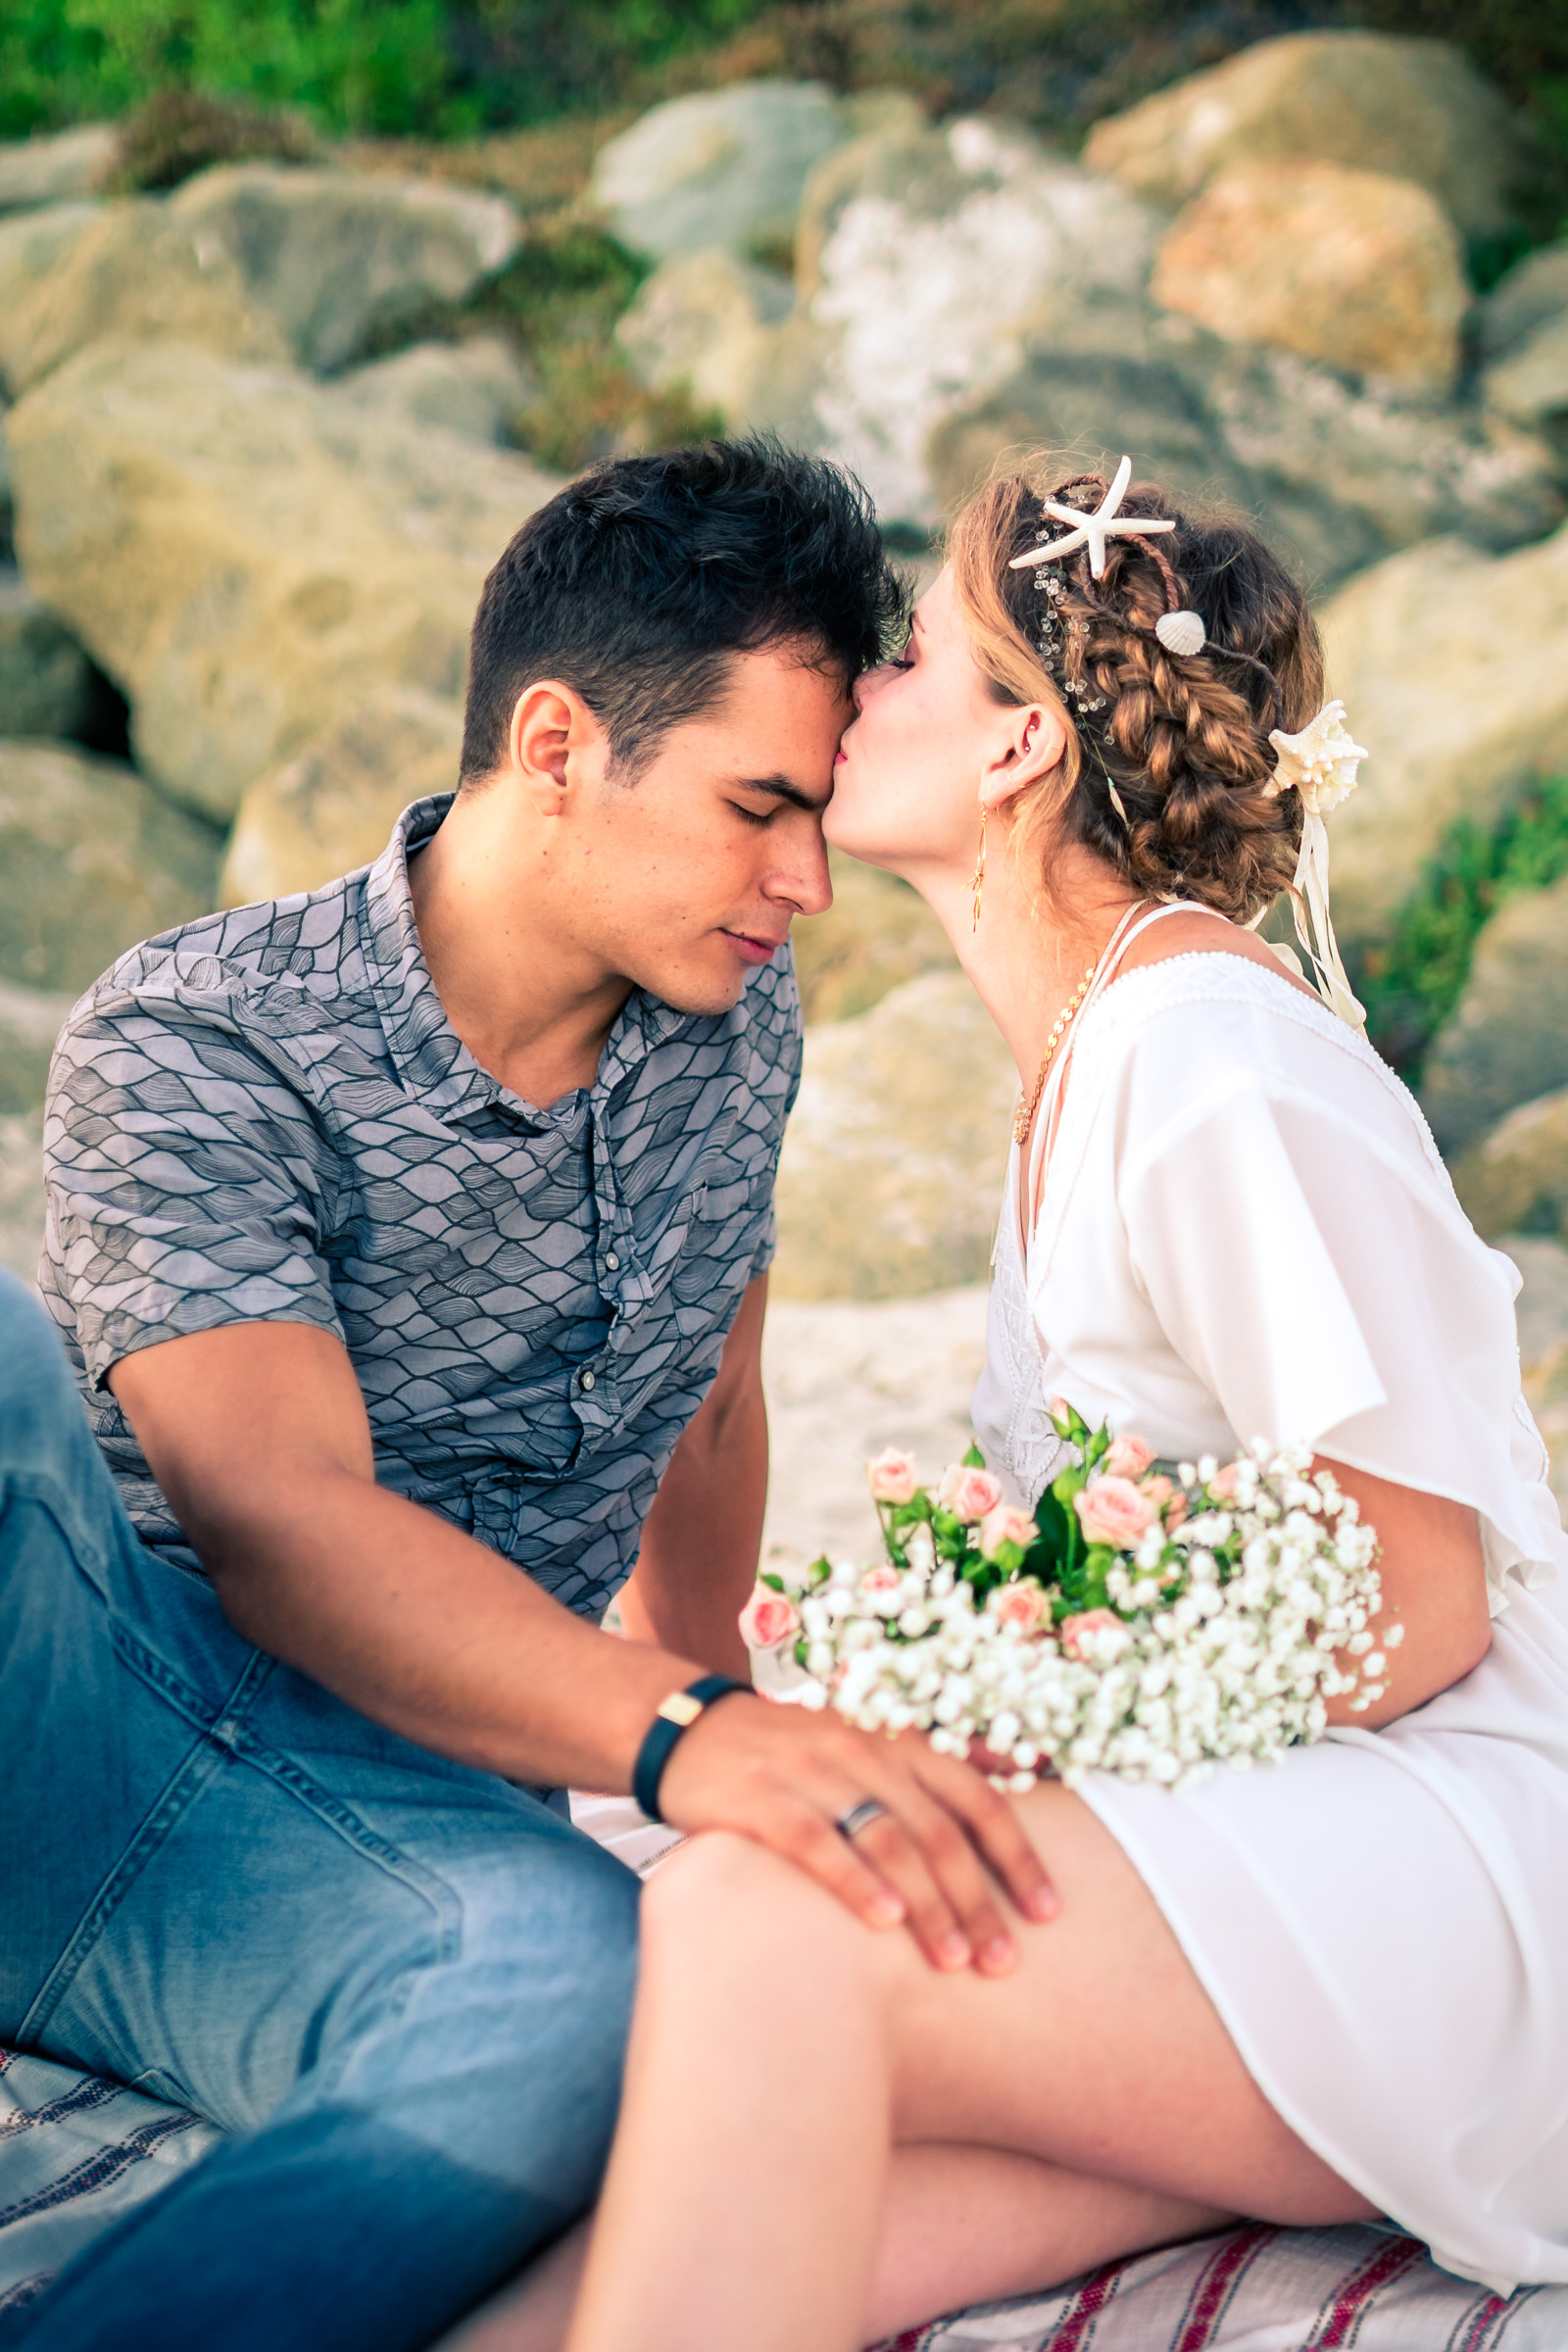 39__Bruno-Amanda-Laguna-beach-engagement_Joseph-Barber-Weddings_3055.jpg